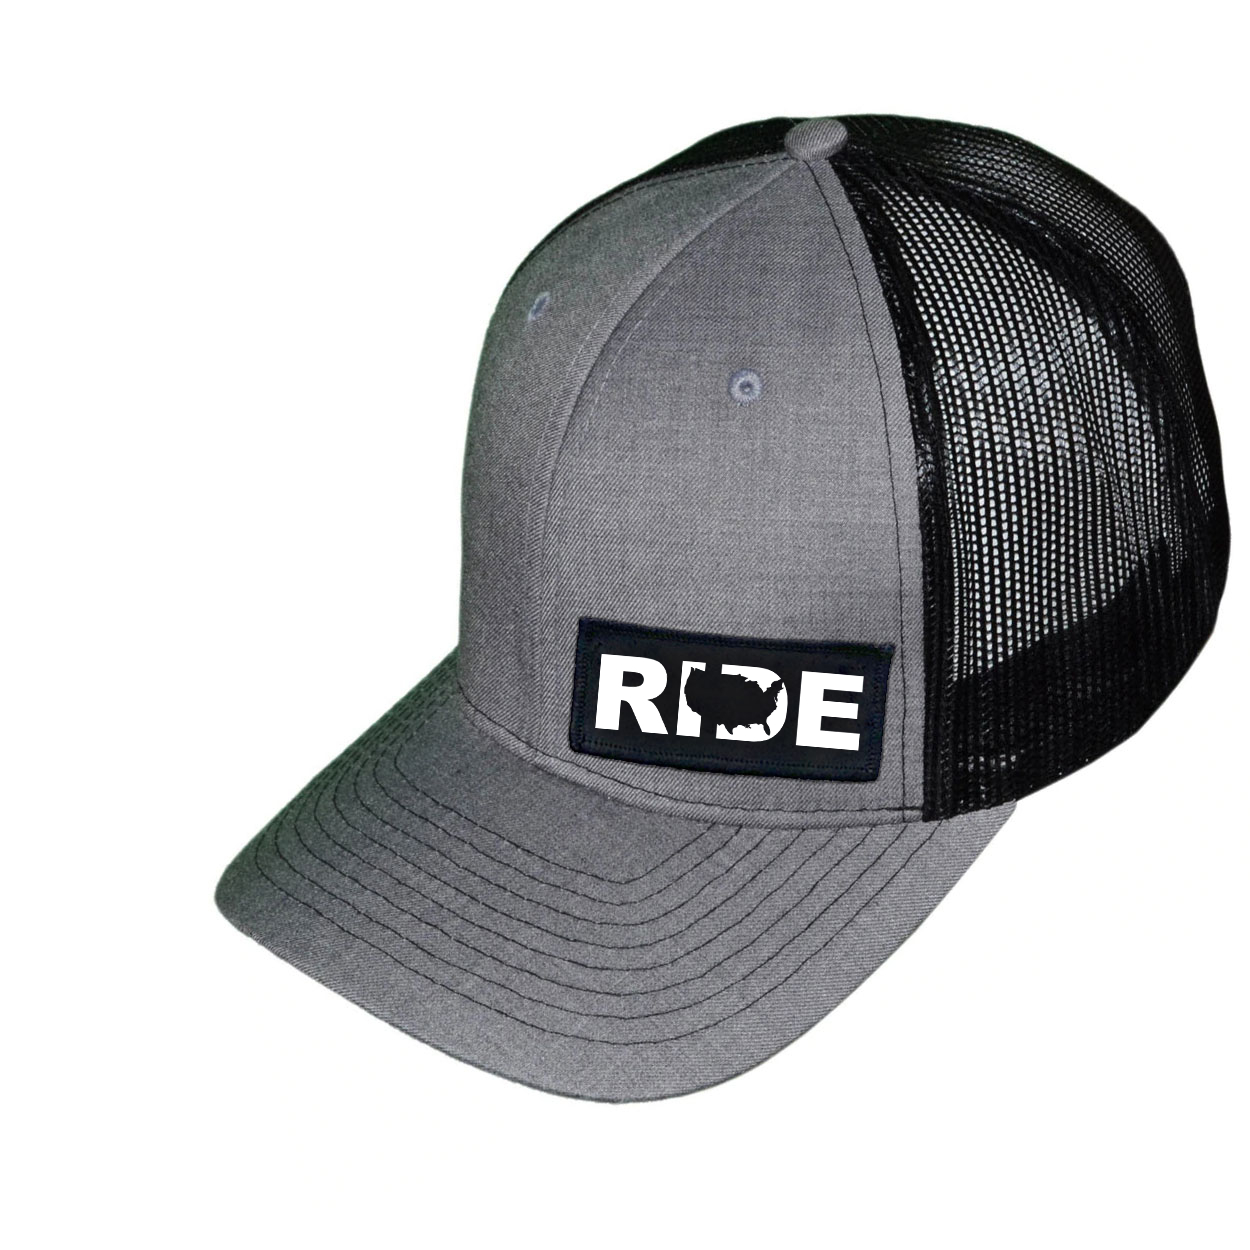 Ride United States Night Out Woven Patch Snapback Trucker Hat Heather Gray/Black (White Logo)